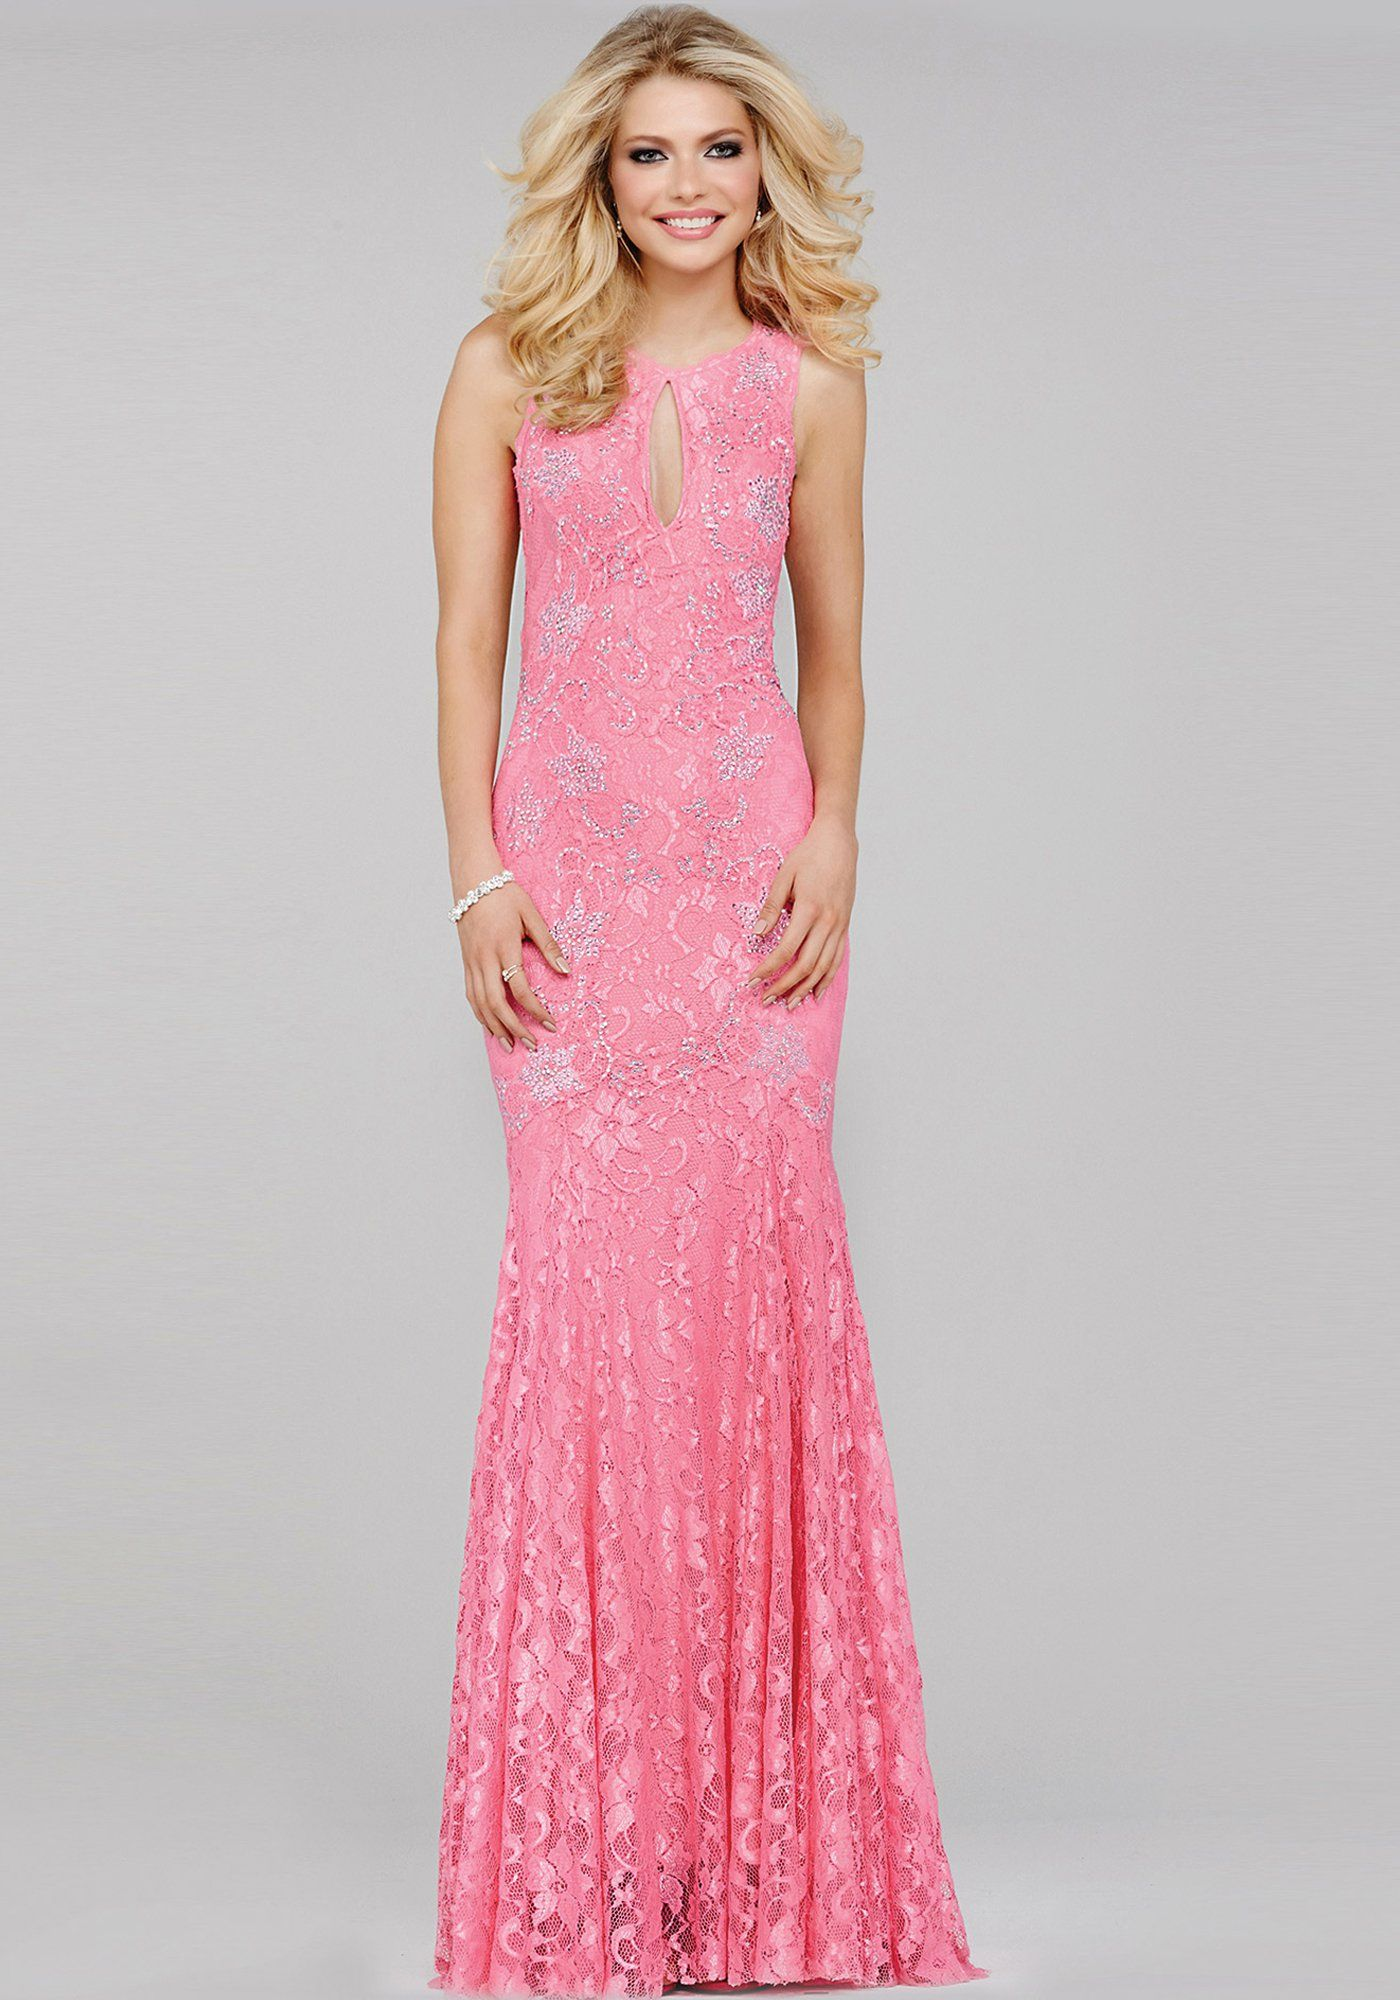 Pink Lace Prom Dress 35024 | Cool stuff to buy | Pinterest | Vestiditos